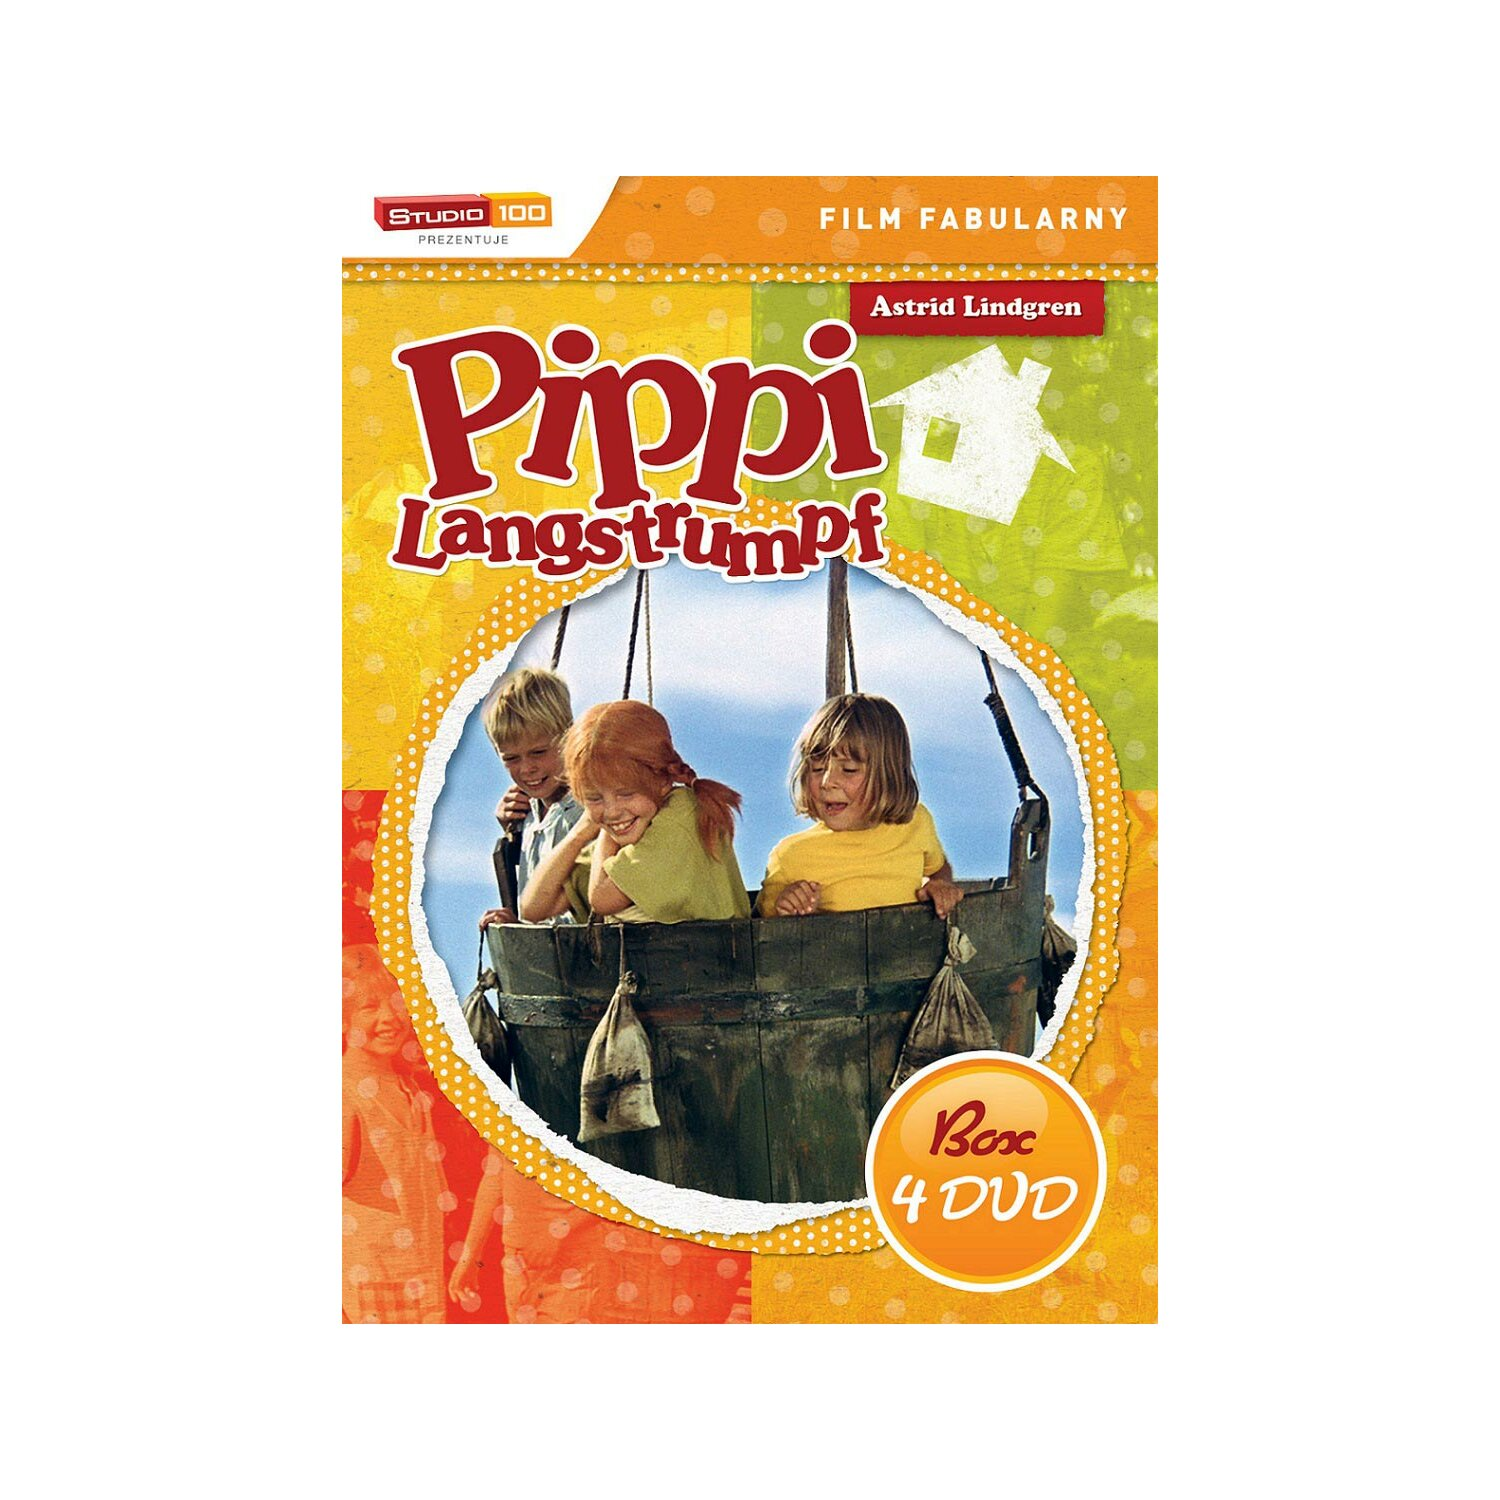 Pippi Langstrumpf. Box (4DVD)